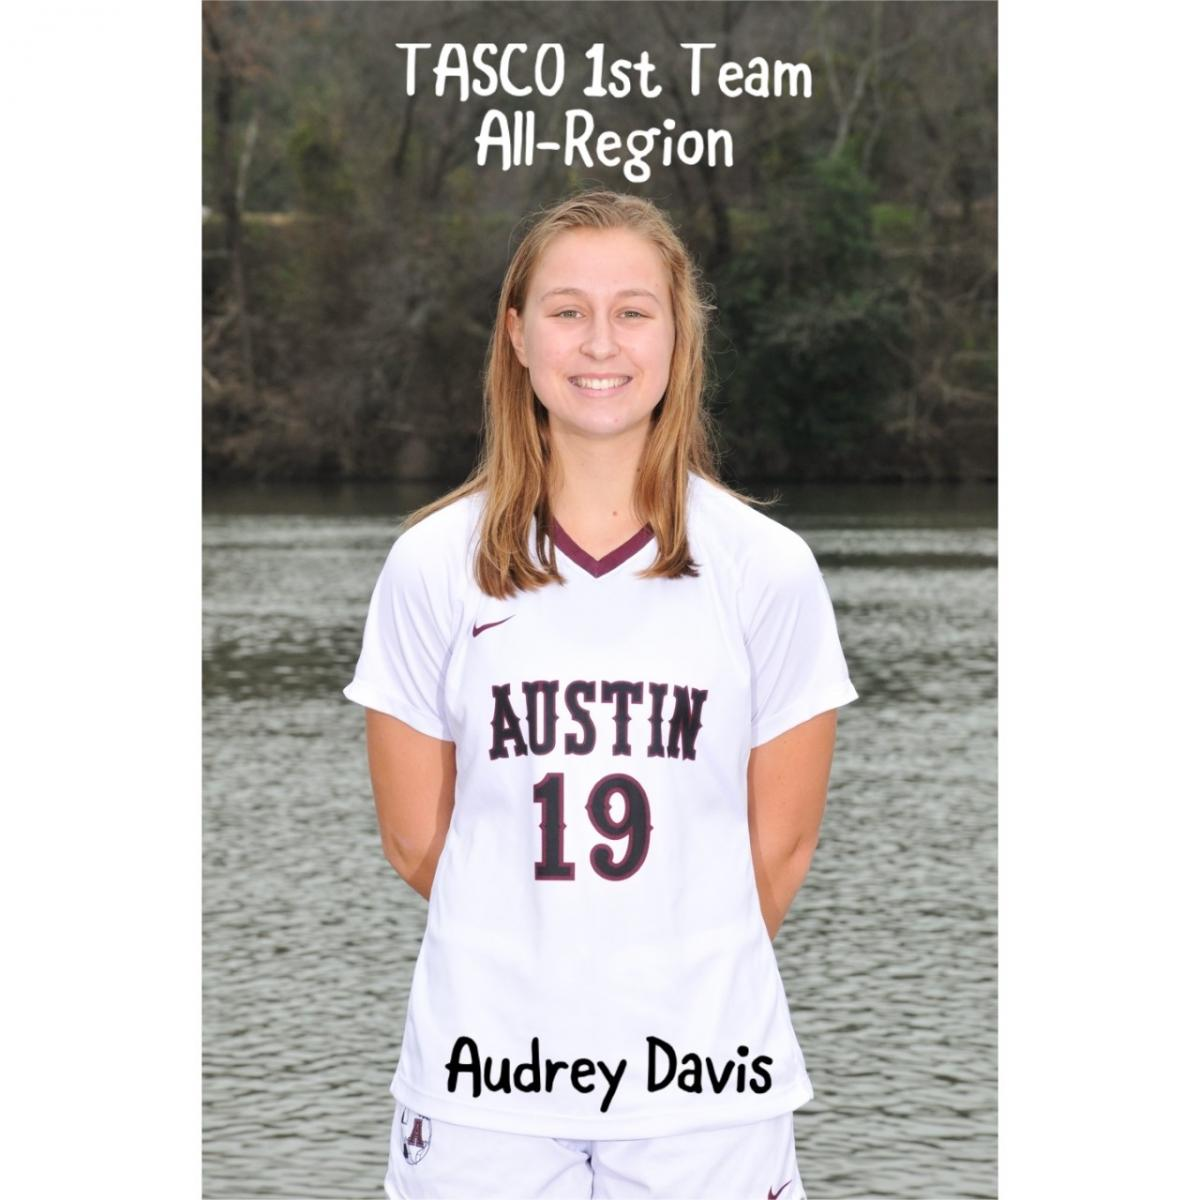 Audrey Davis named to TASCO All-Region Team